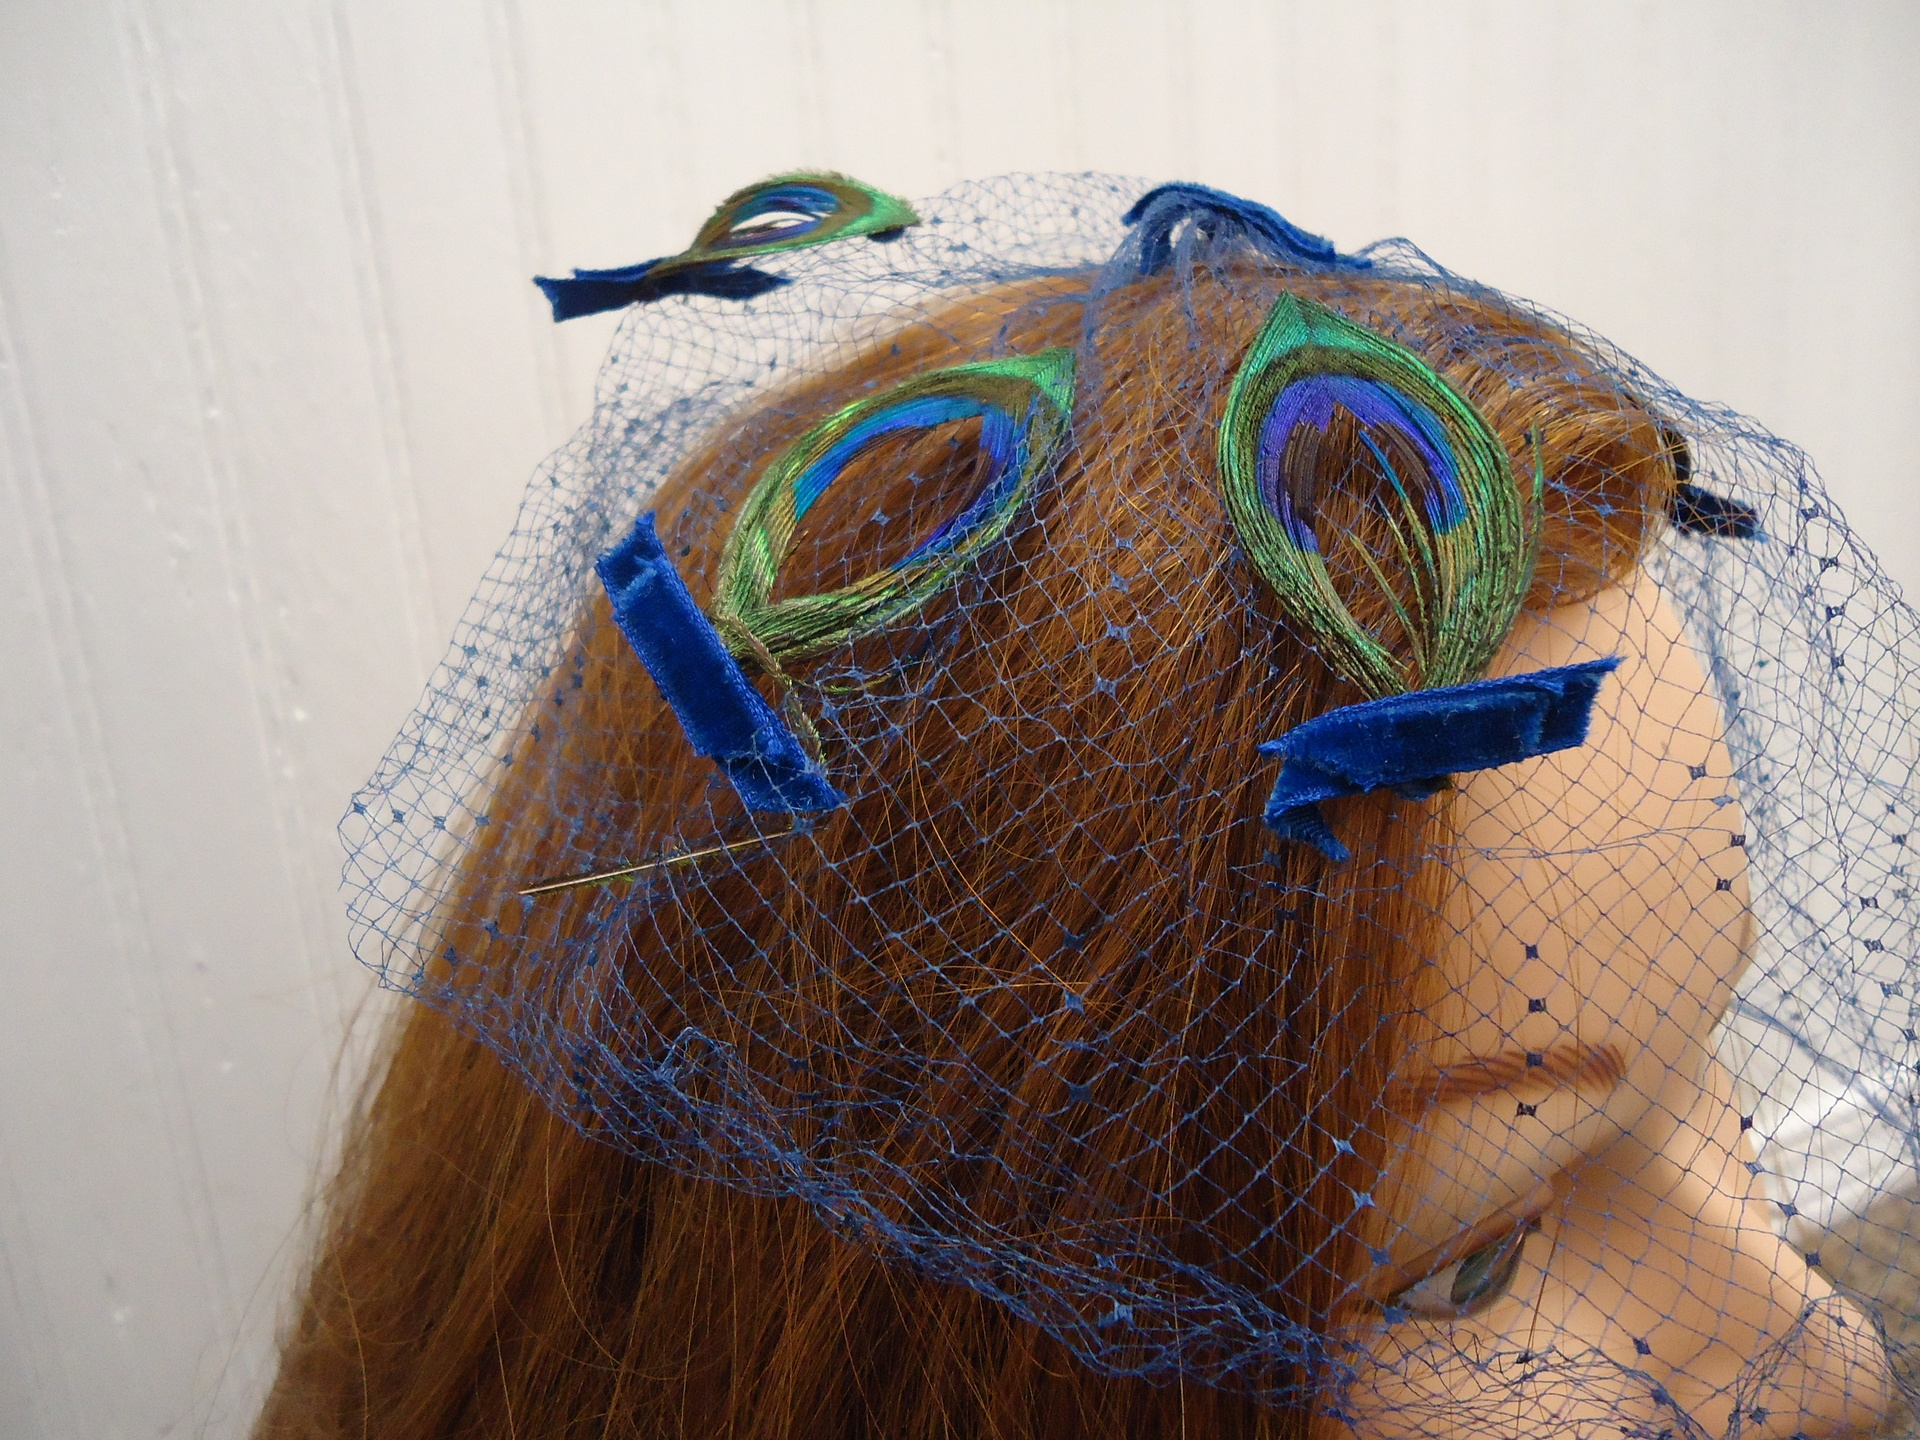 Vintage Blue Netting Fascinator With Pea And Velvet Ribbon Accent